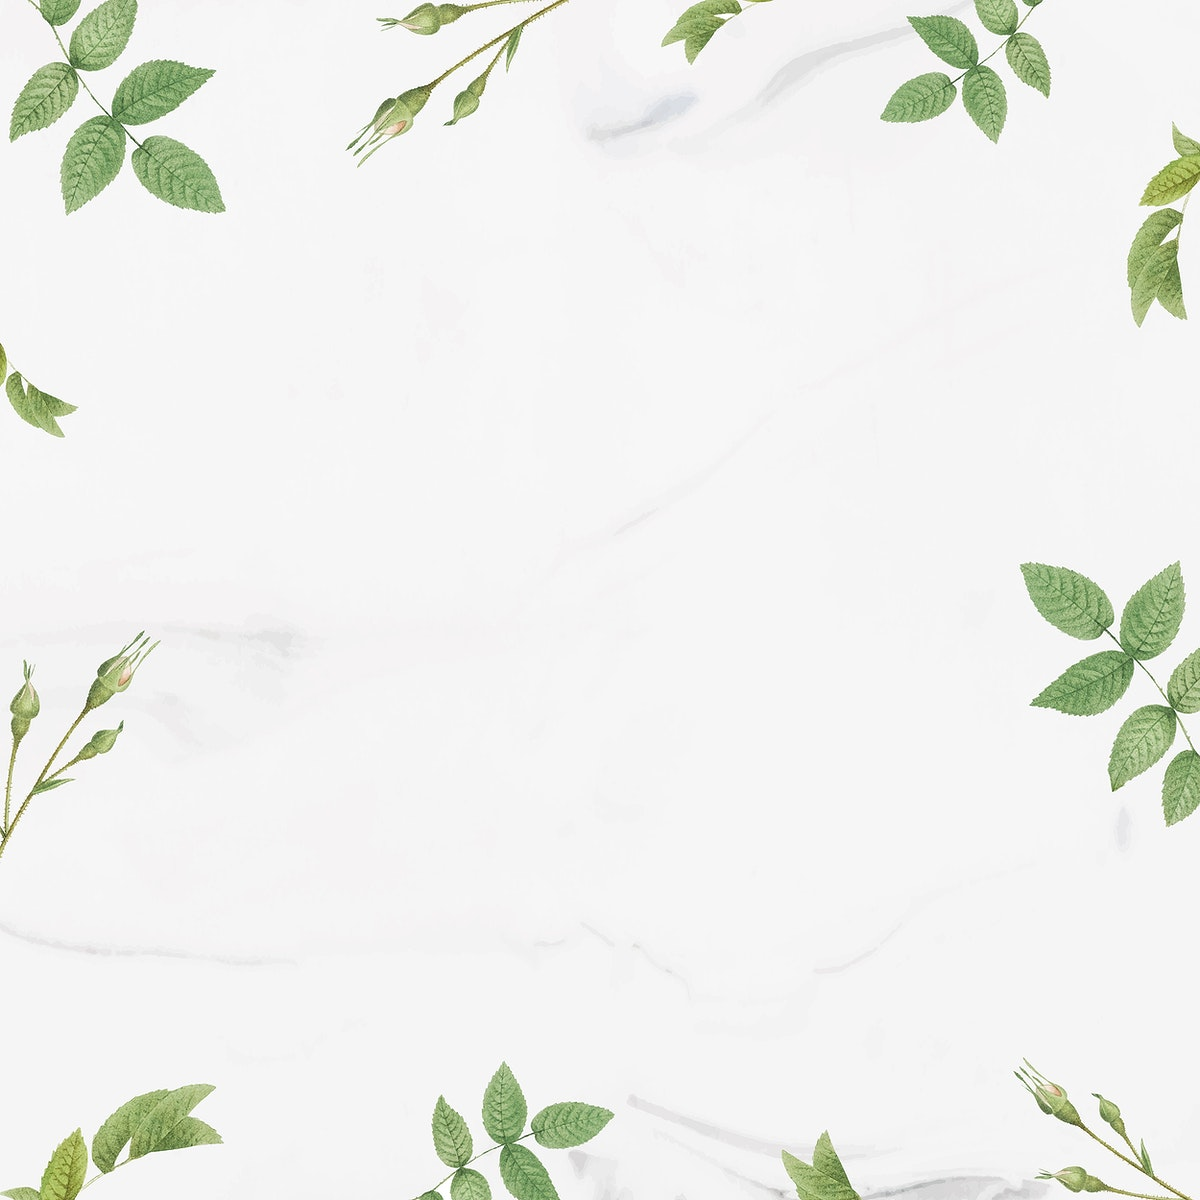 Green foliage pattern frame vector